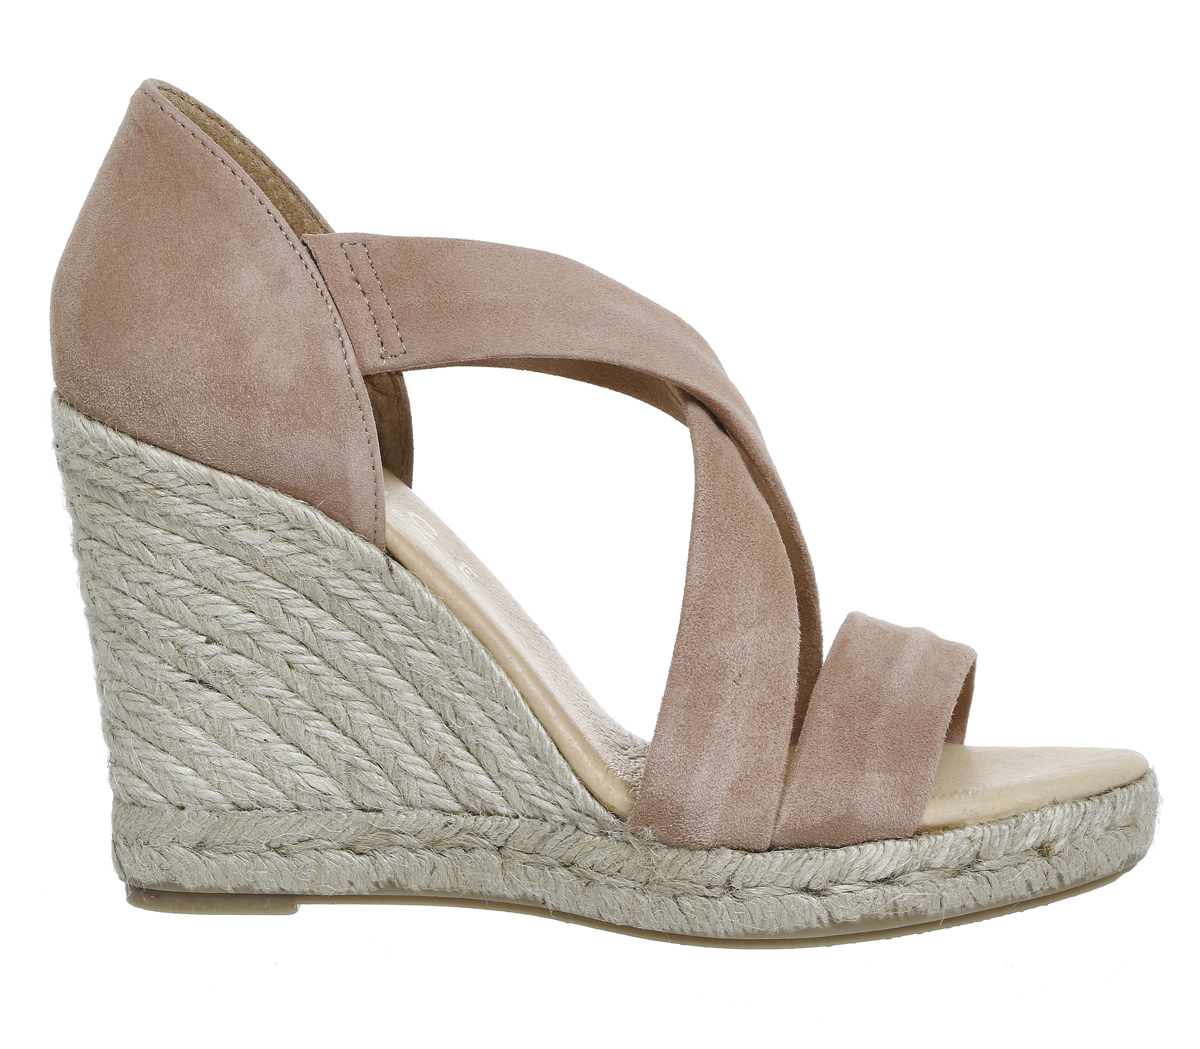 0c2e954680f Sentinel Womens Office Holiday Wedge Espadrilles Nude Kid Suede Heels